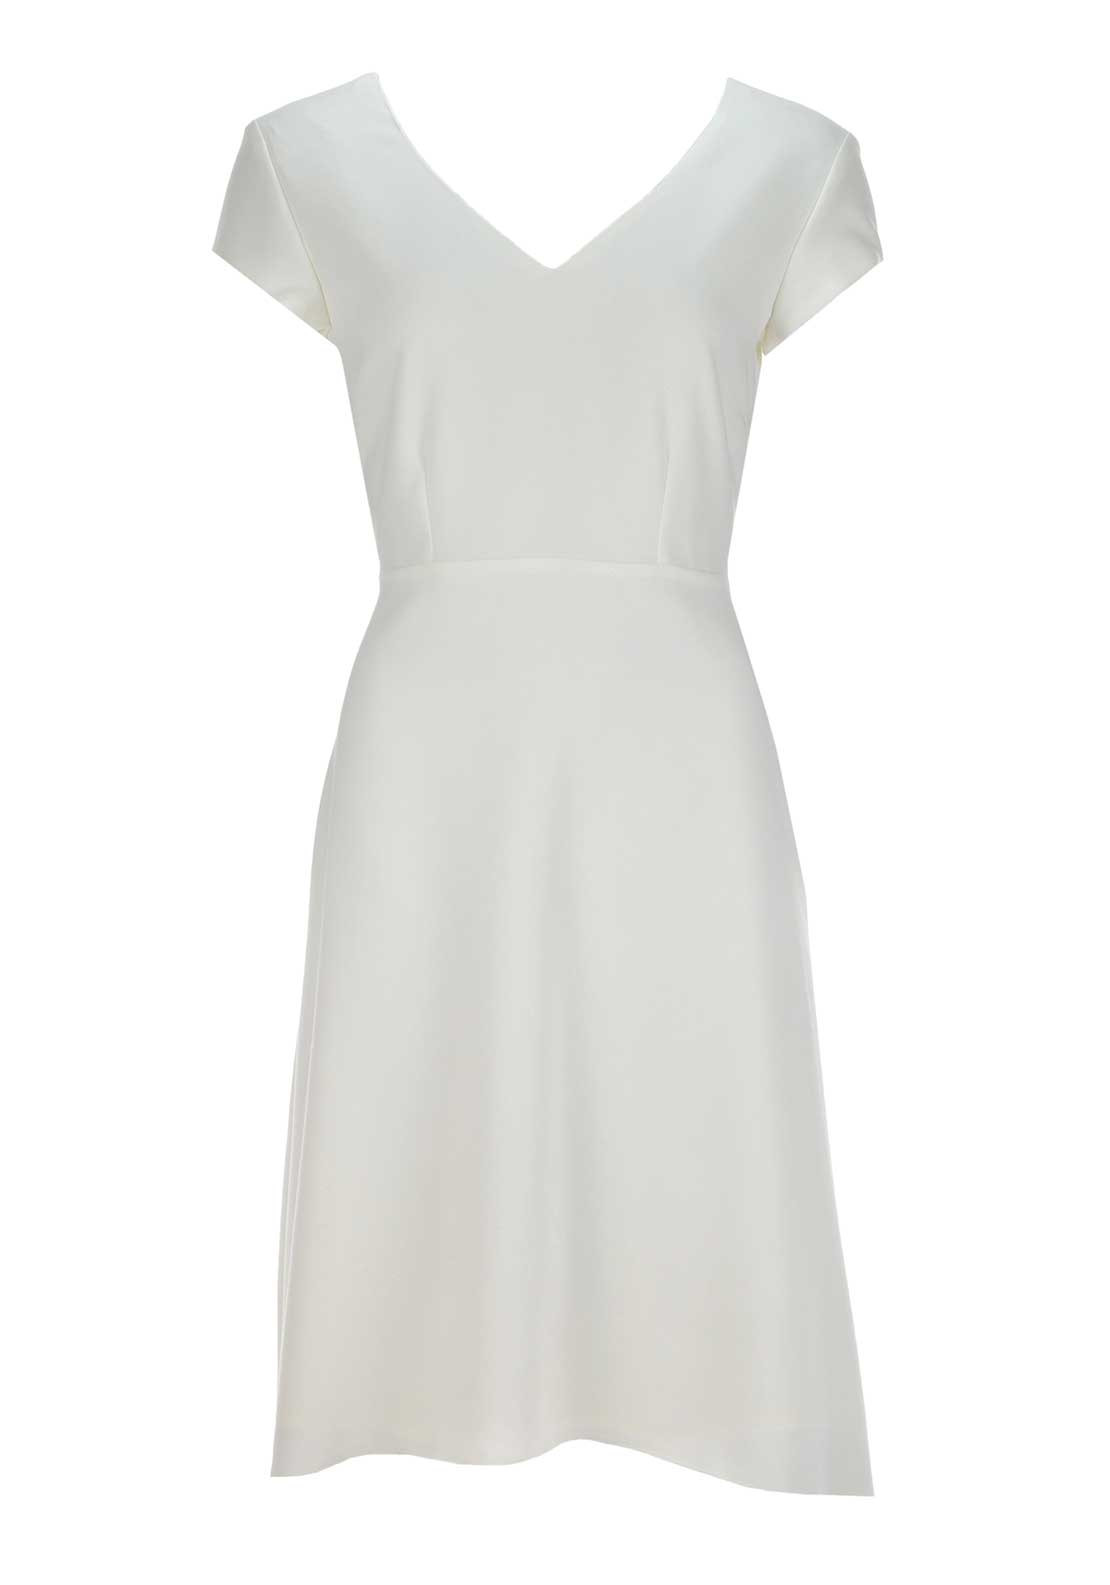 Fee G Midi Dress, Cream